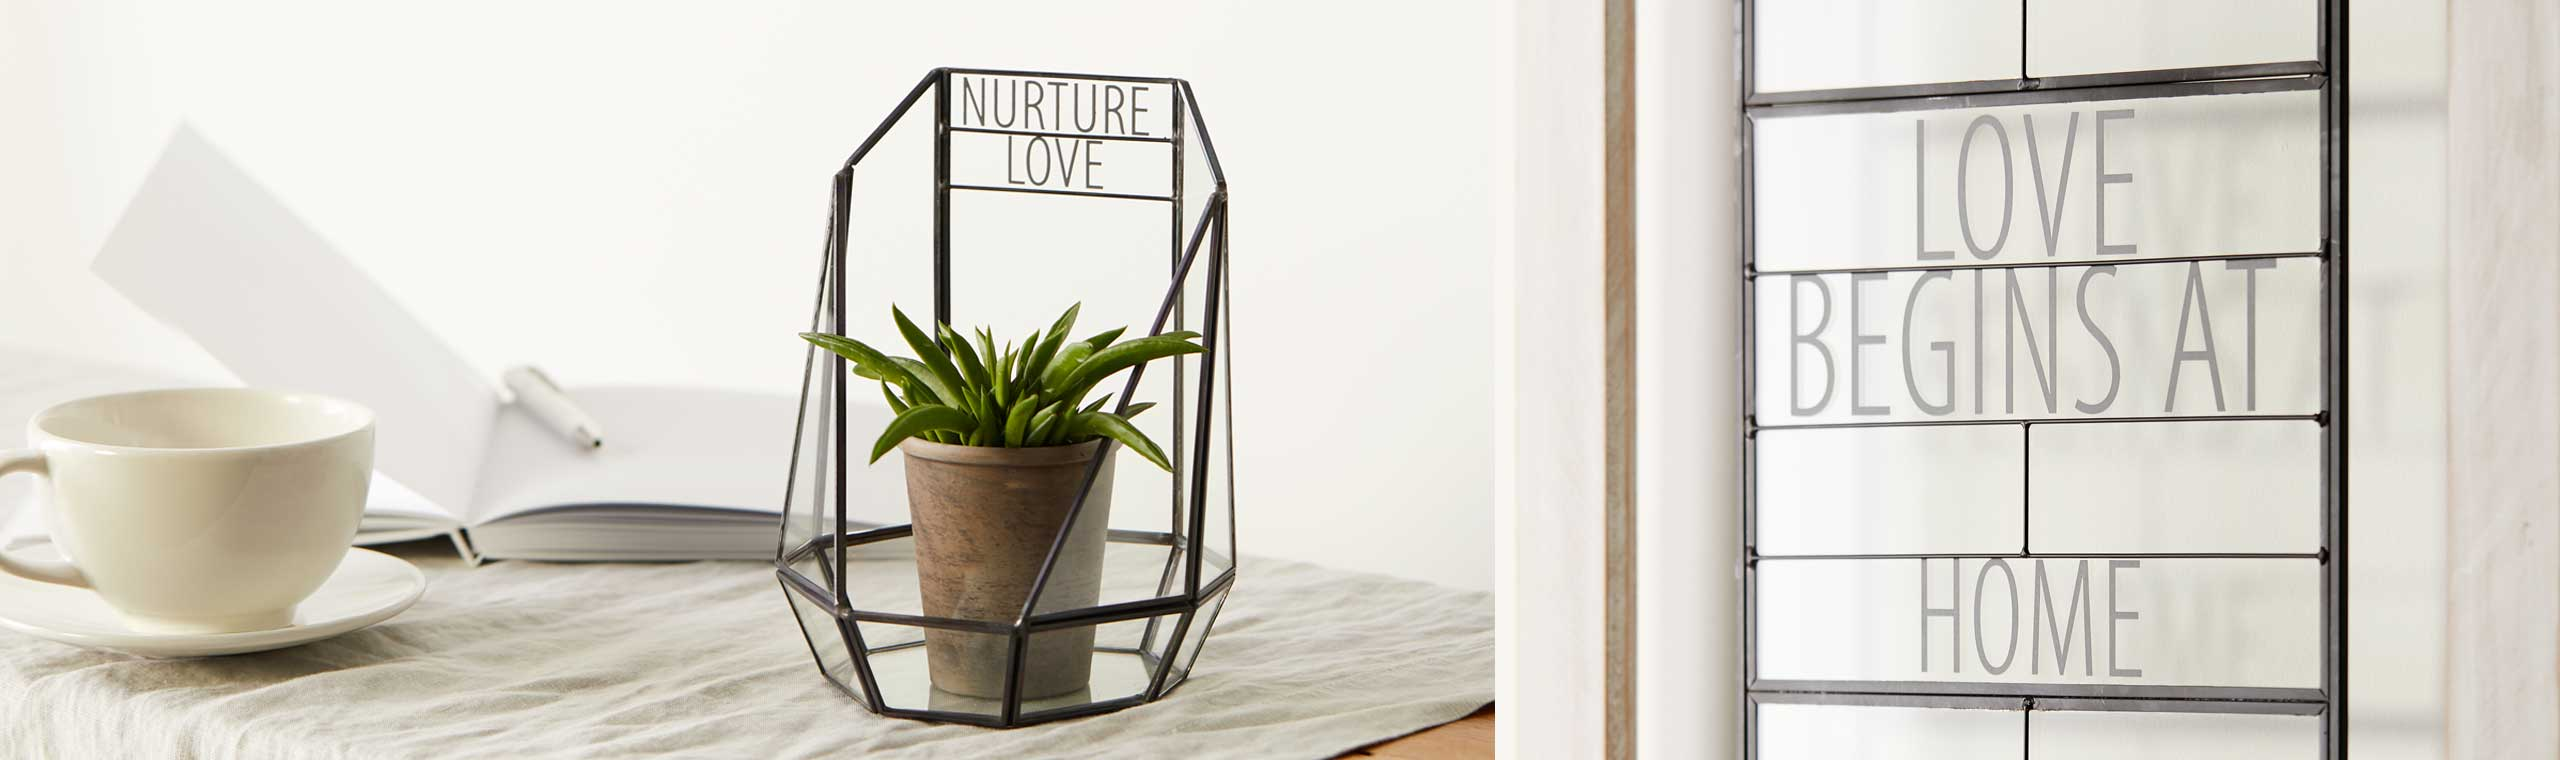 Frames for plate pots encouraging nurture and love